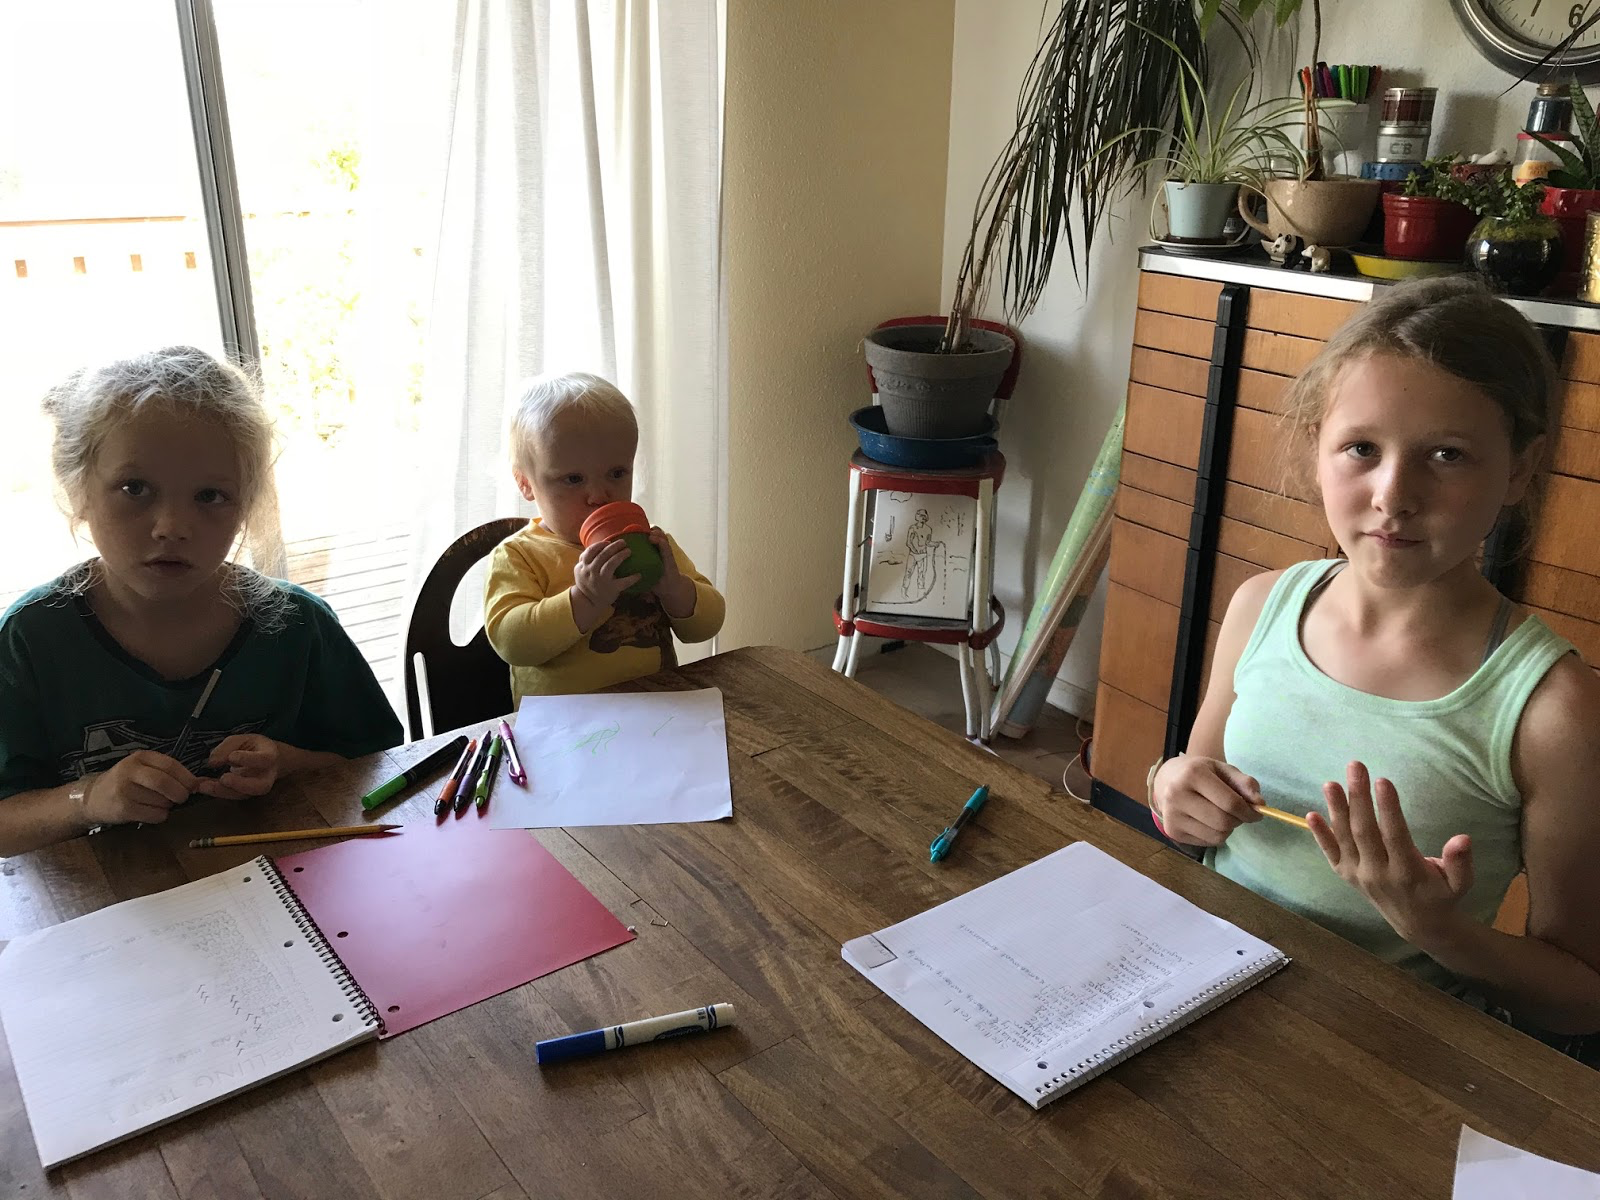 Homeschool children from age 2 to age 11 doing spelling test at table.jpg